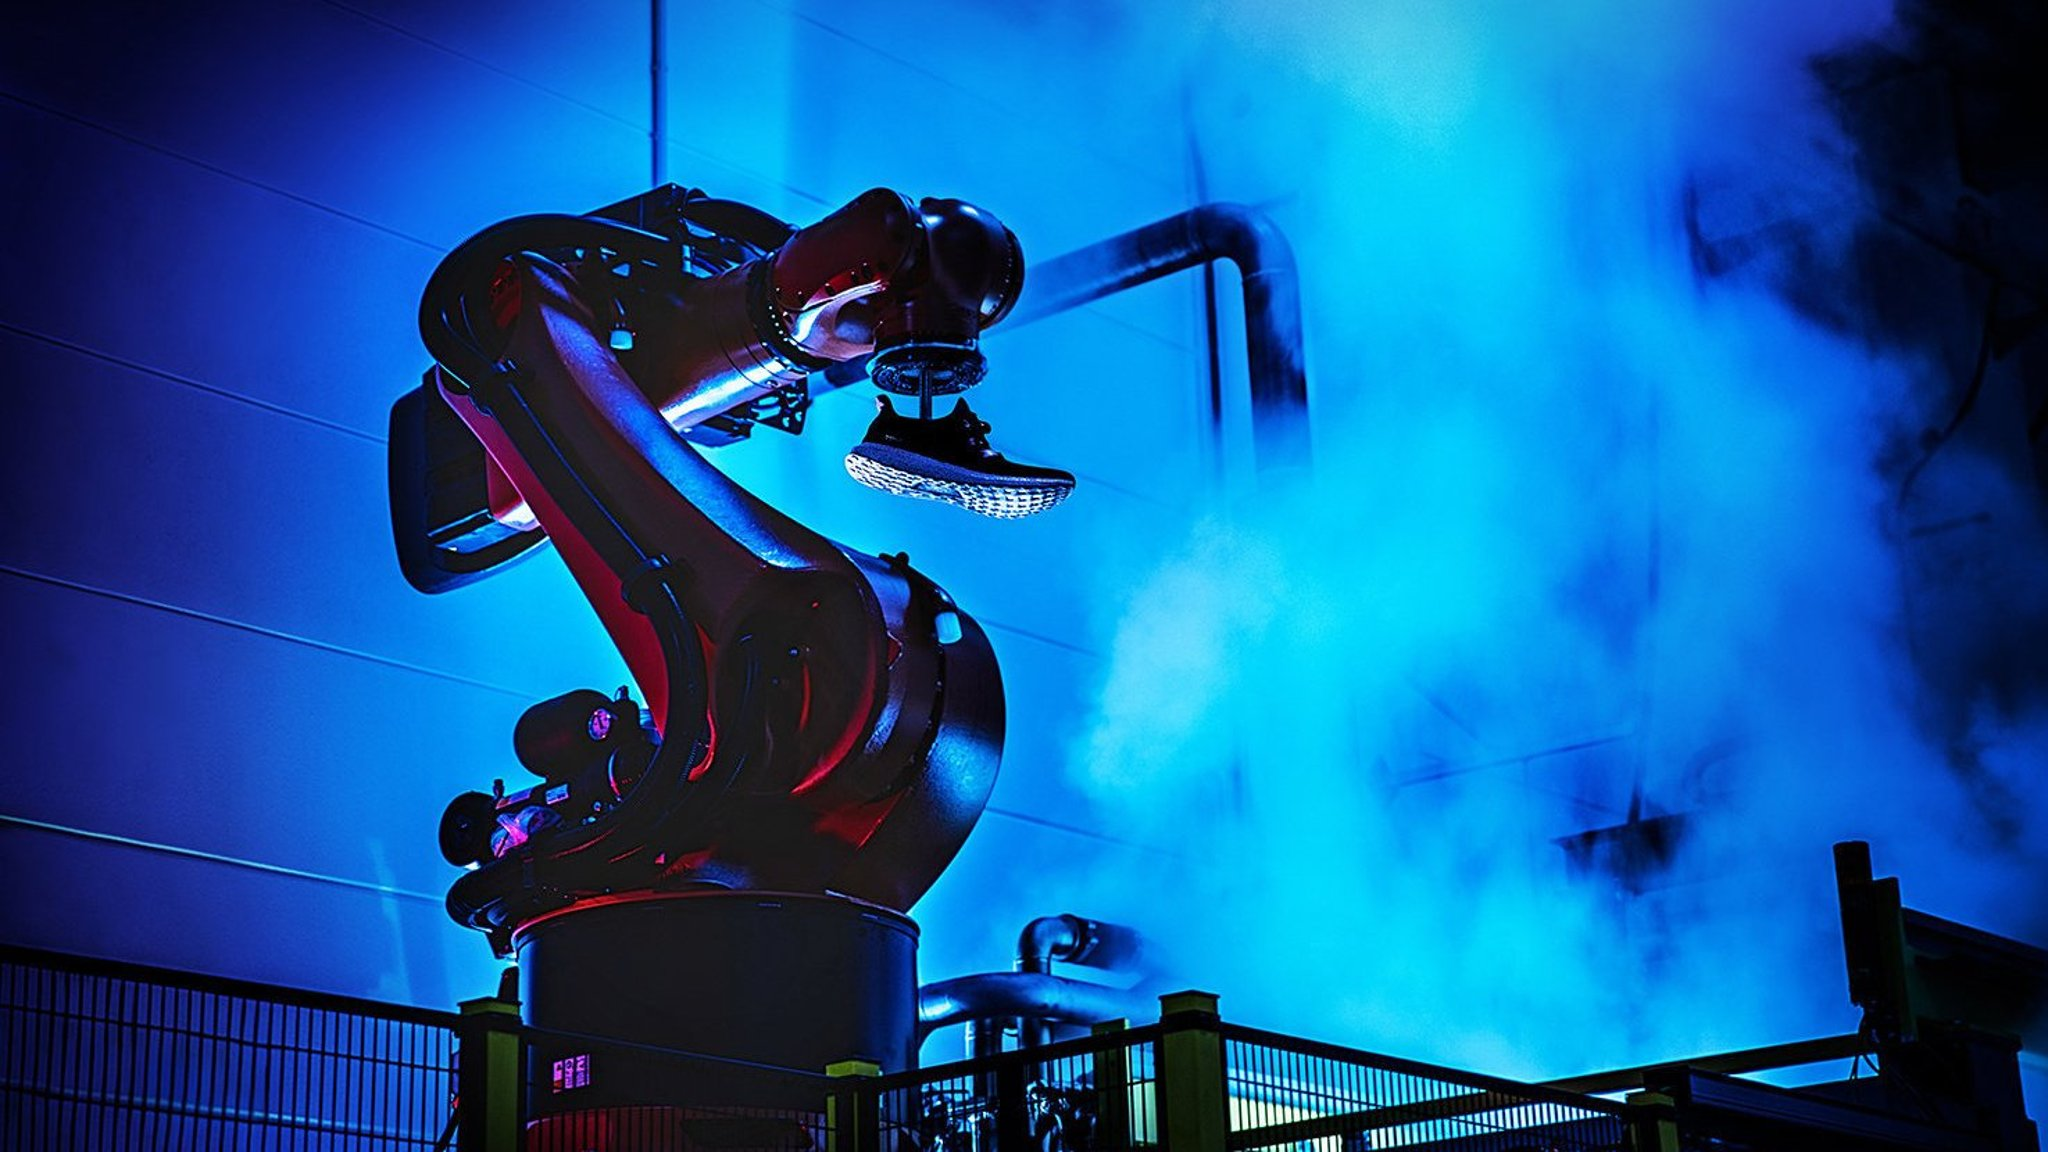 Robot army is transforming the global workplace | Financial